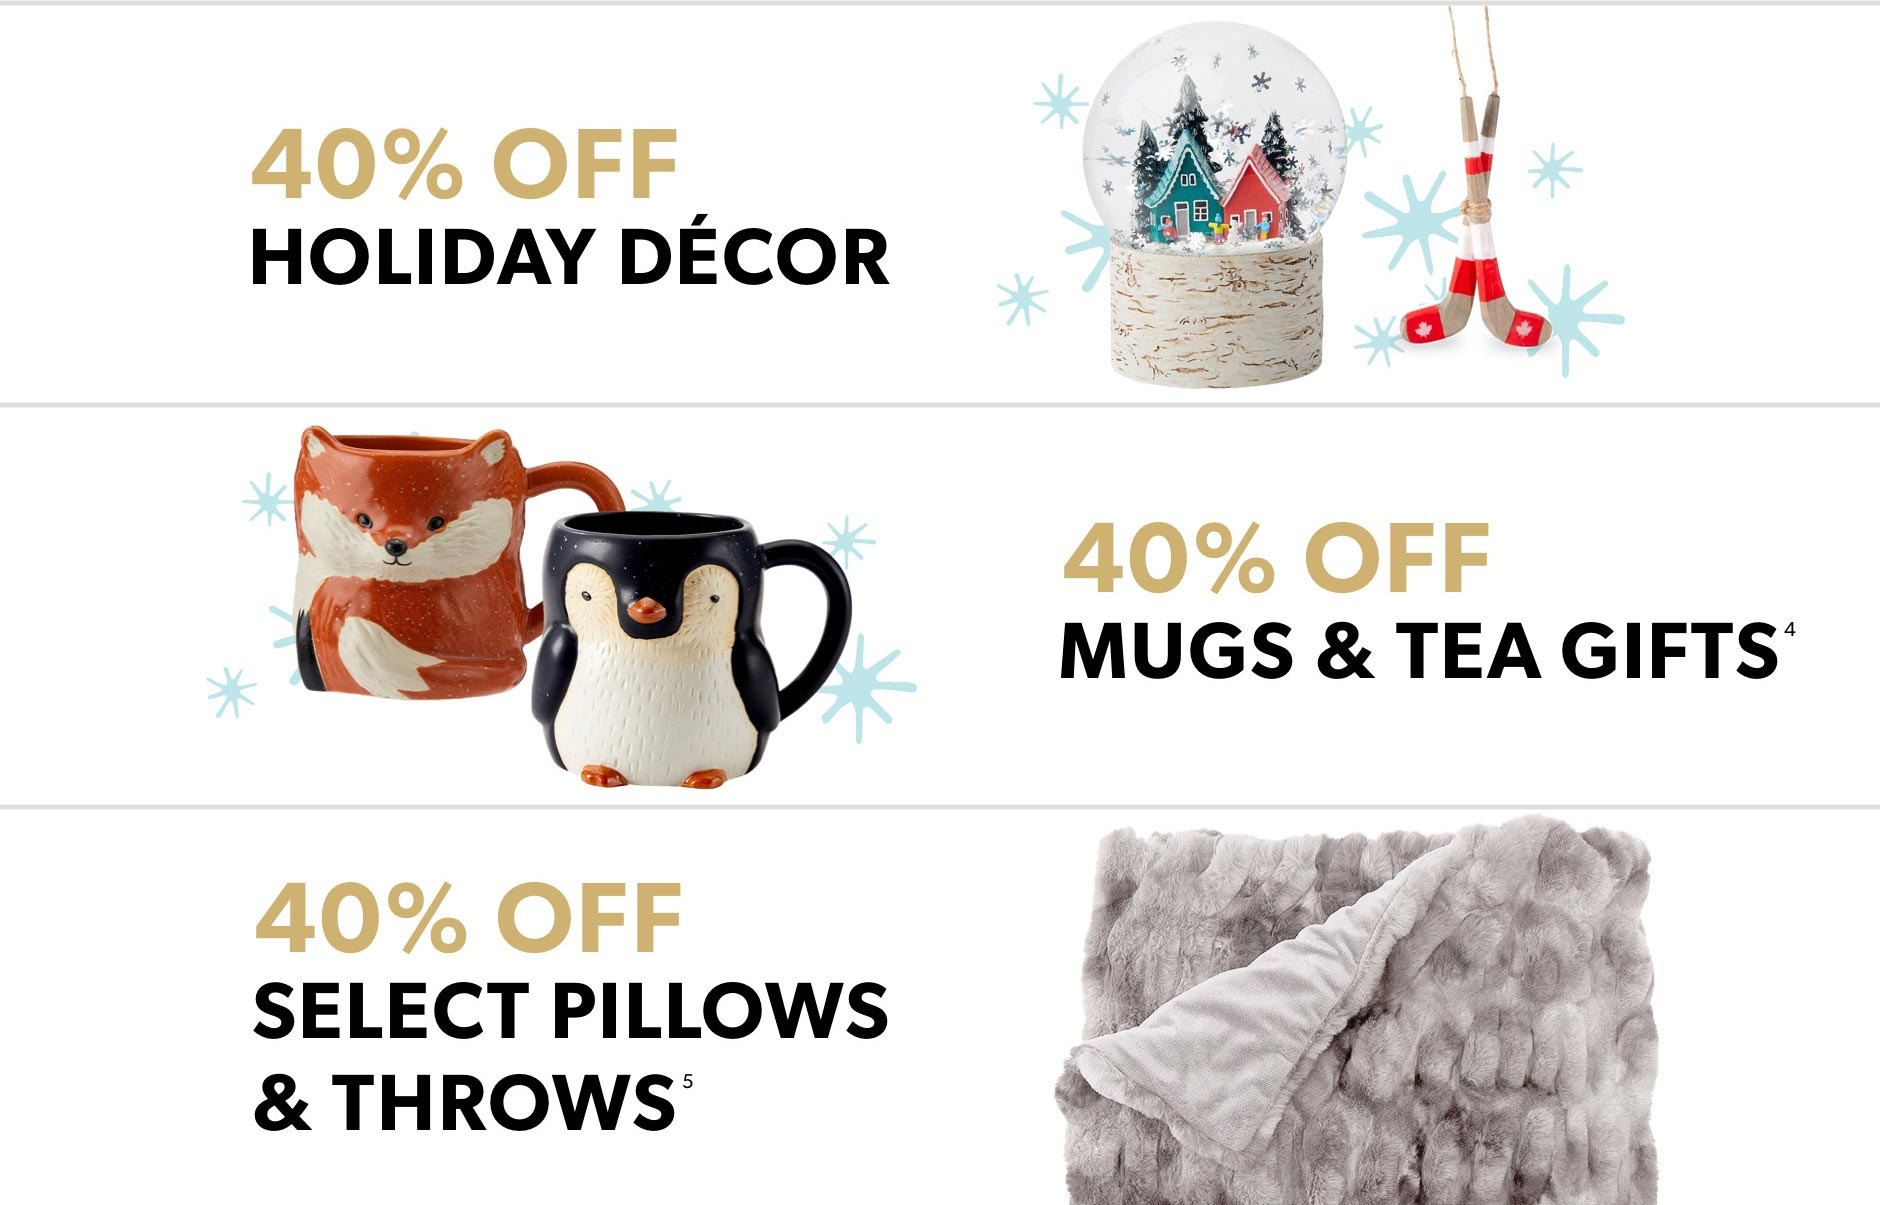 Black Friday In-Store Only: 40$ off holiday decor, 40$ off mugs & tea, 40% off select pillows and throws